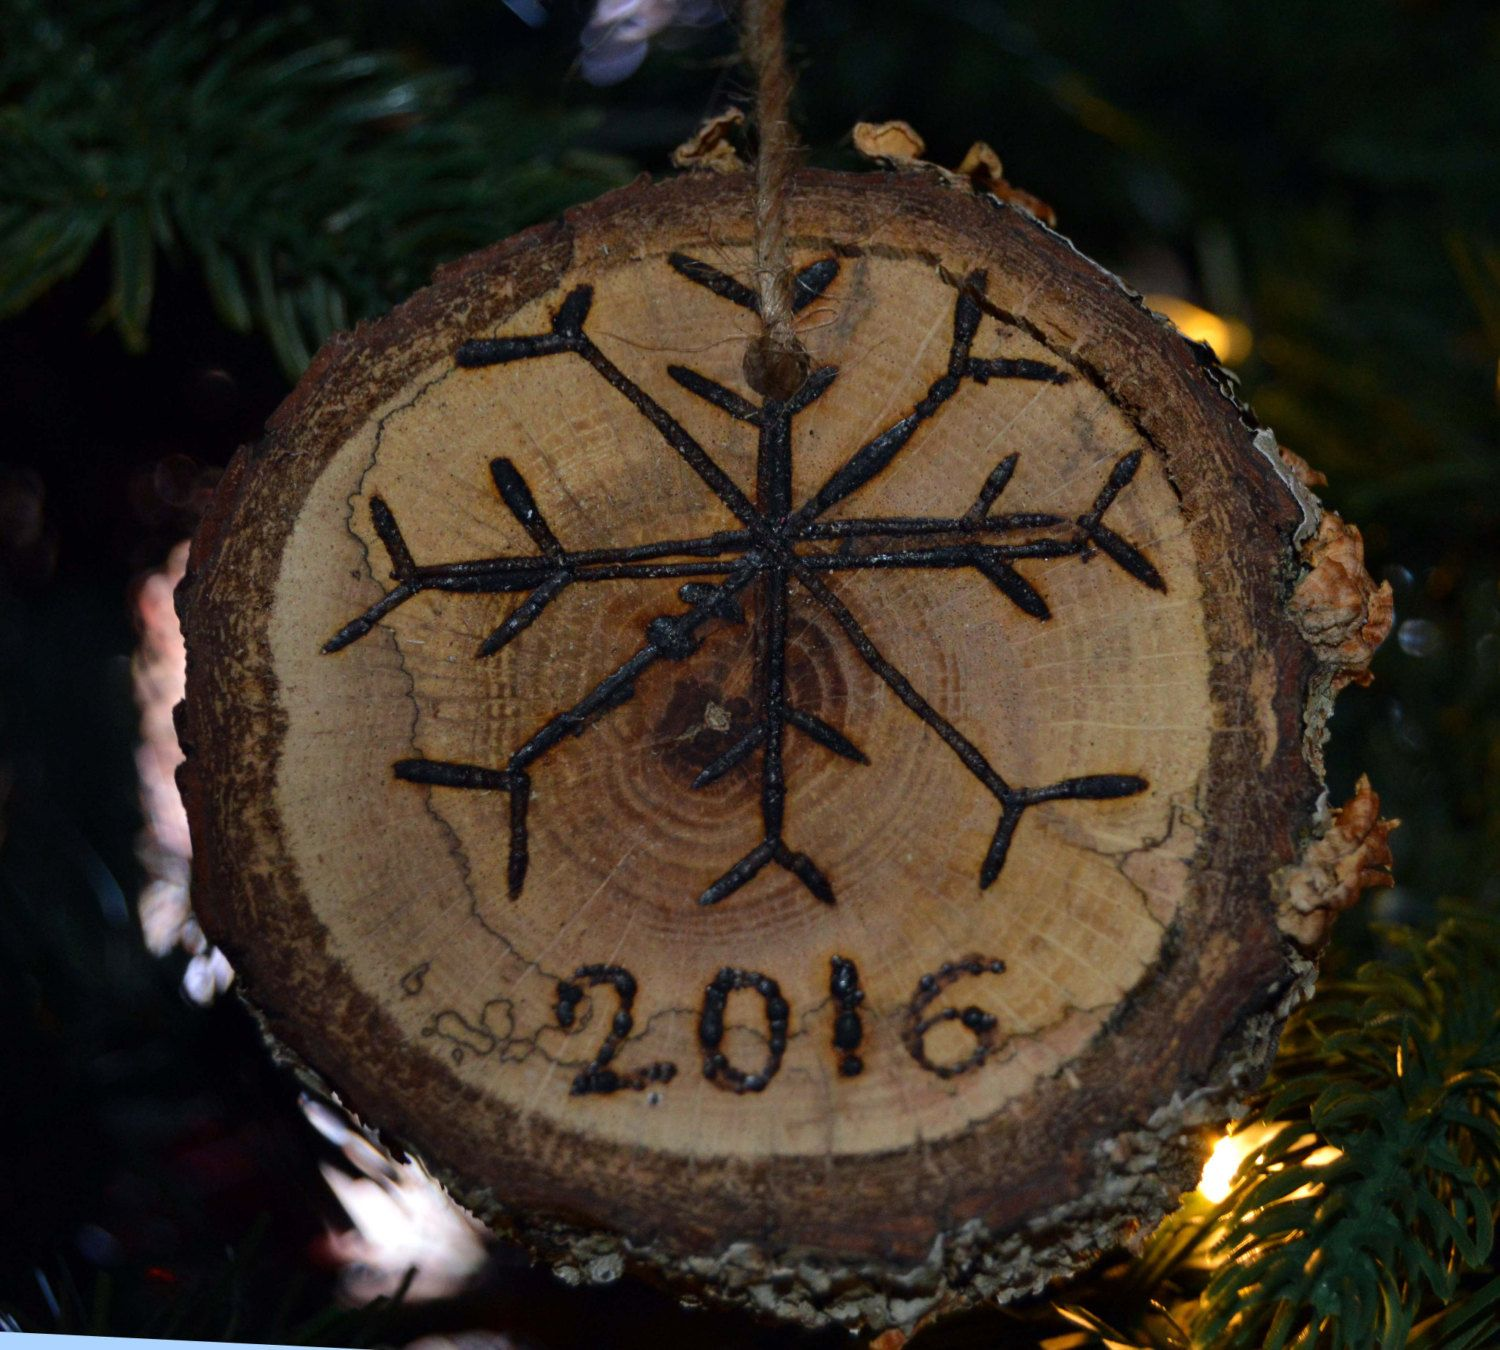 Wood slice ornament, 2016 wood burned ornament, rustic ornament, rustic Christmas, wood ornament, Christmas ornament, tree branch ornament by Artfulcastle on Etsy